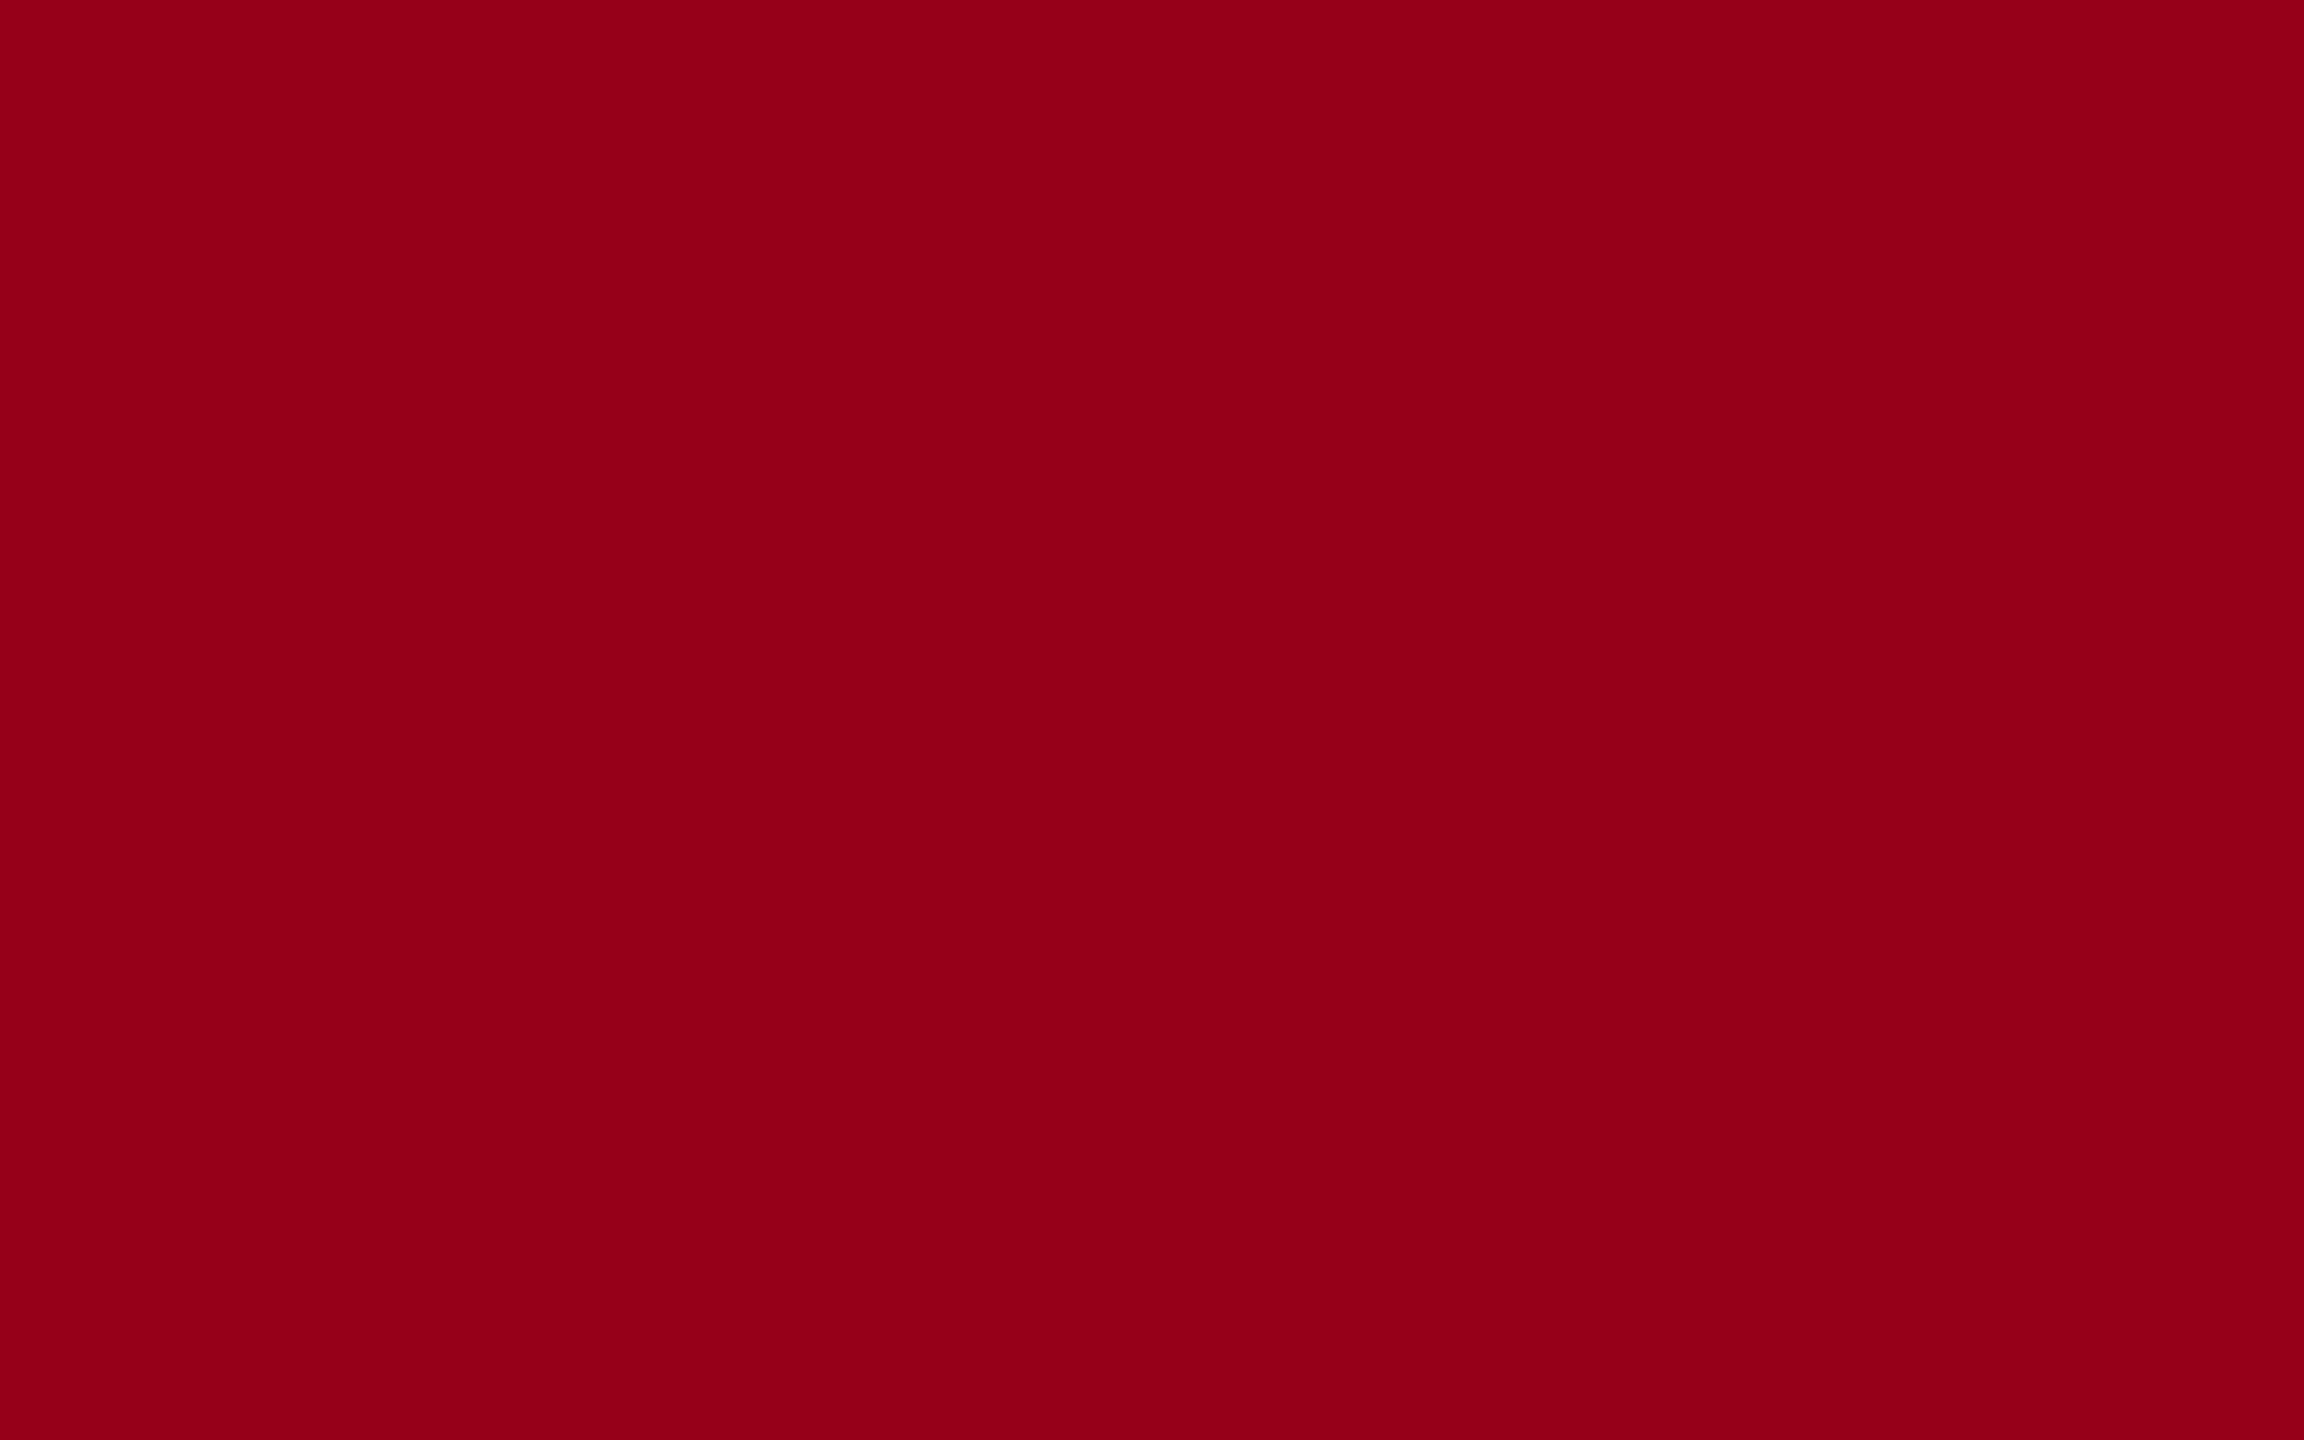 2304x1440 Carmine Solid Color Background